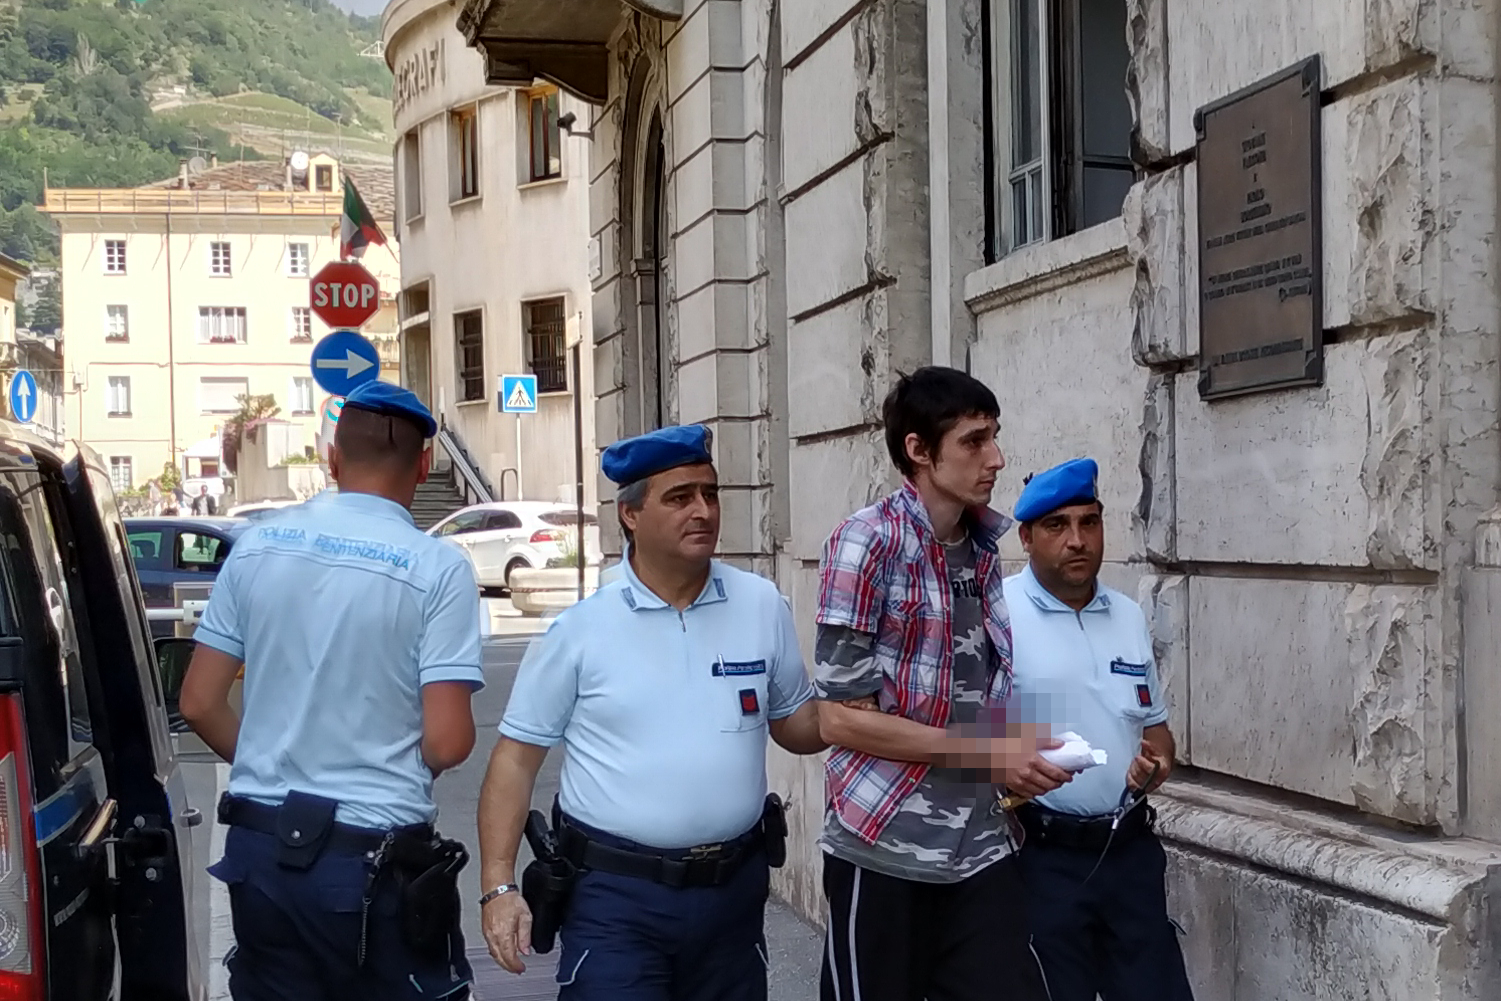 Paolo Formento arriva in Tribunale